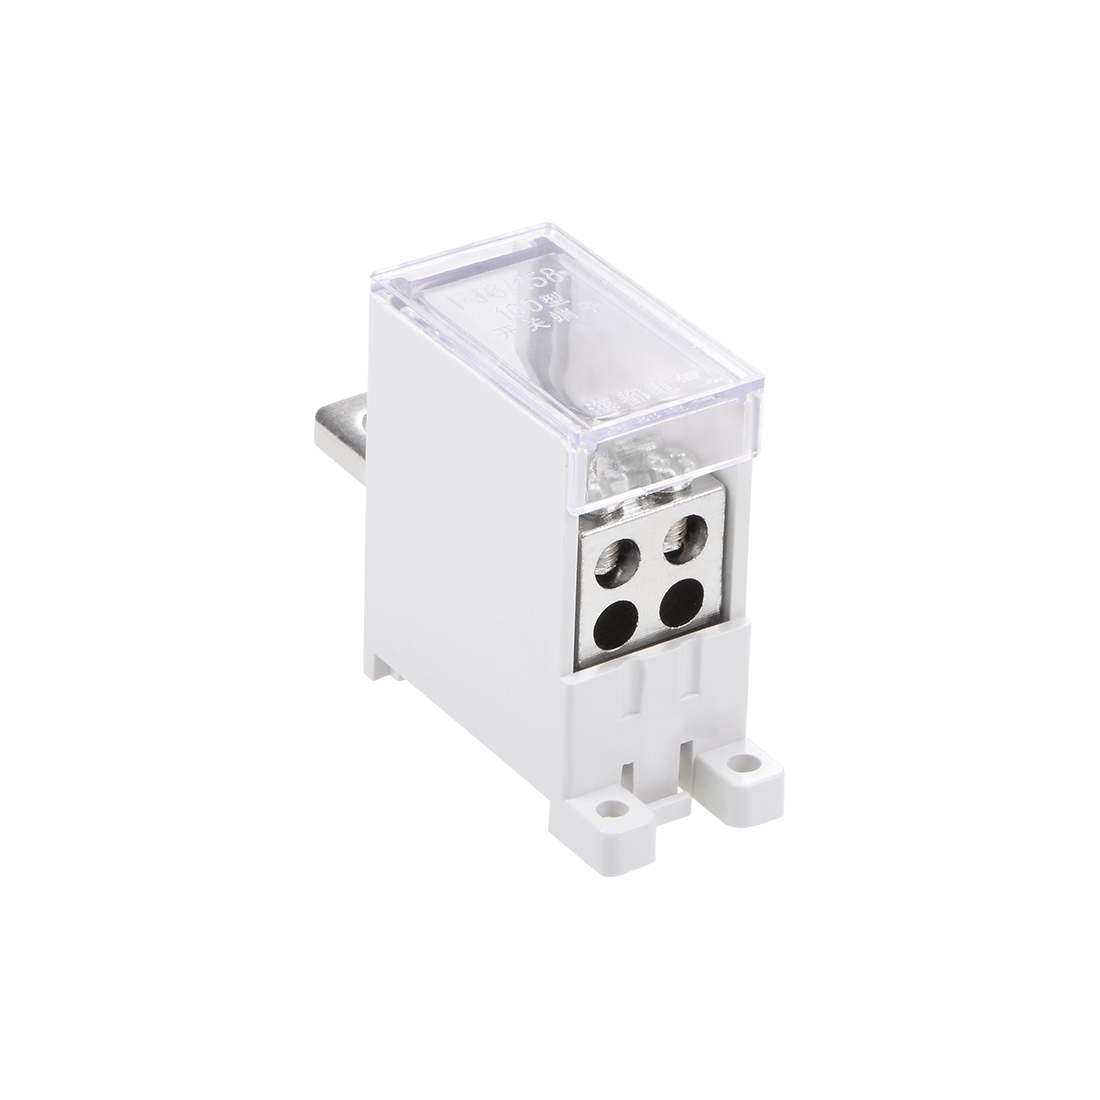 1 Inlet 4 Outlet DIN Rail Terminal Blocks 125A Max Input Distribution Block